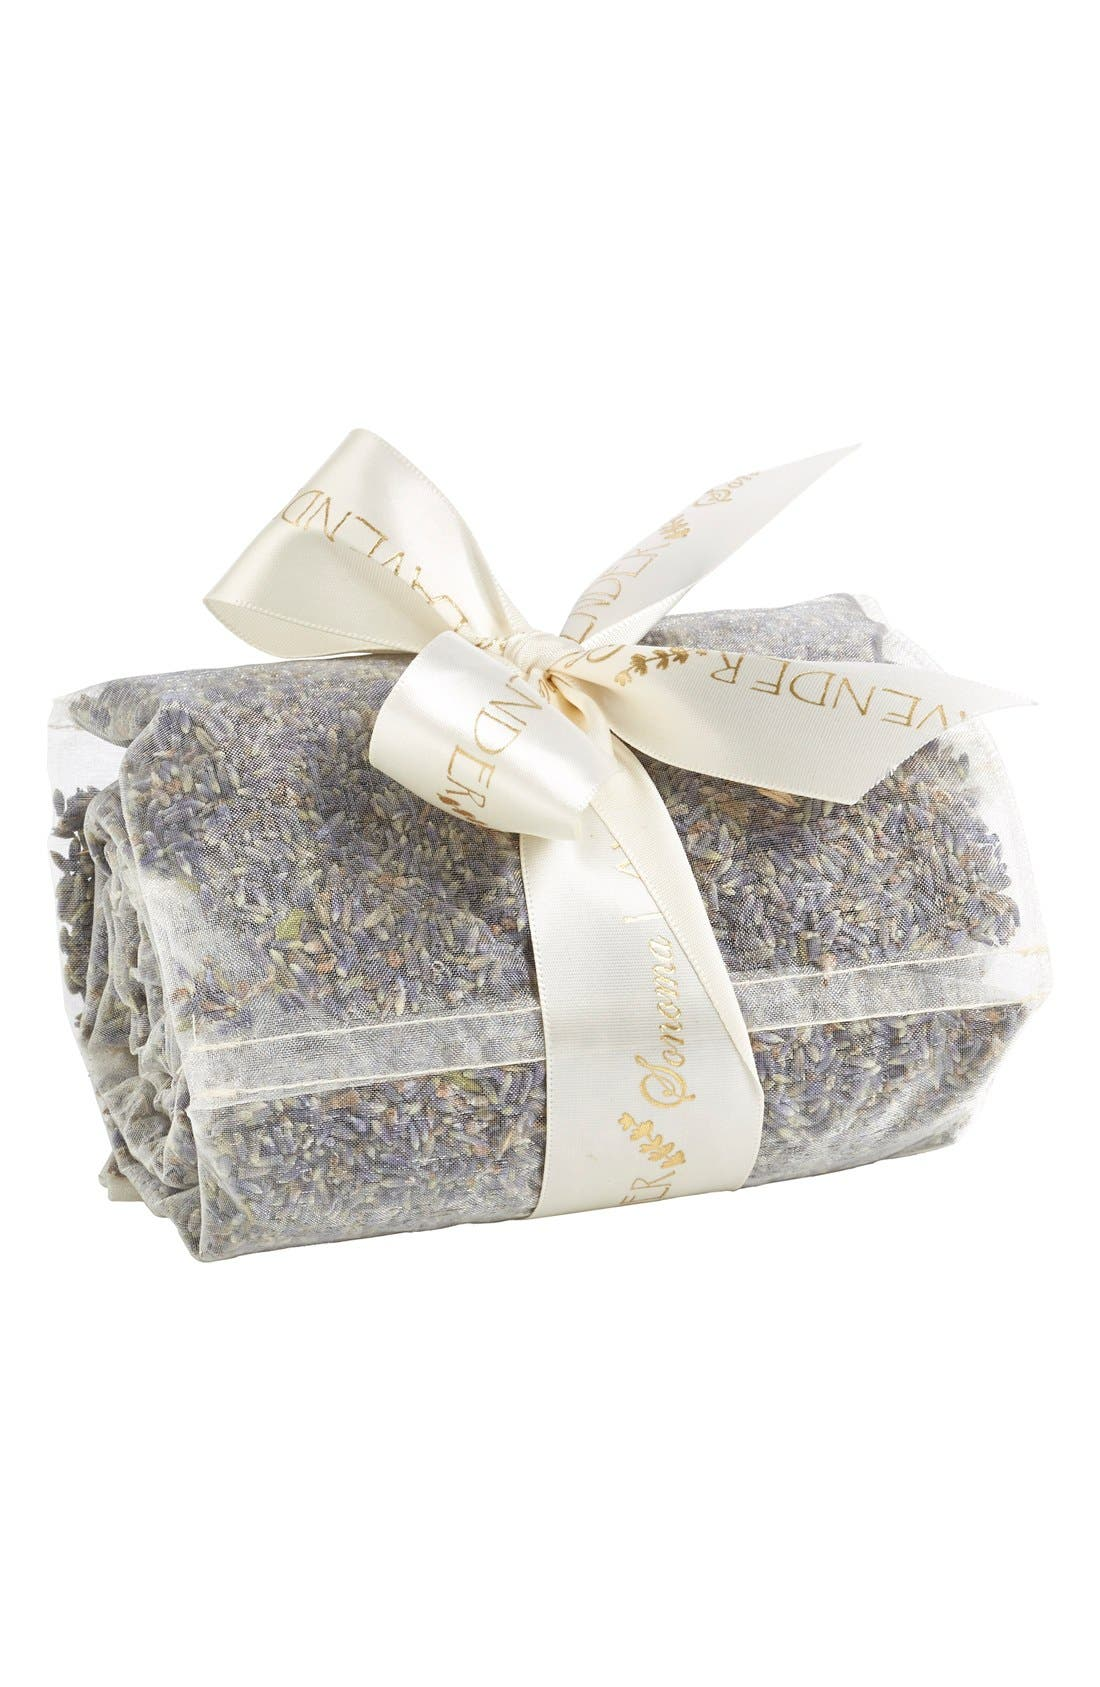 'Sachet by the Yard' Lavender Scent Pack,                             Main thumbnail 1, color,                             No Color